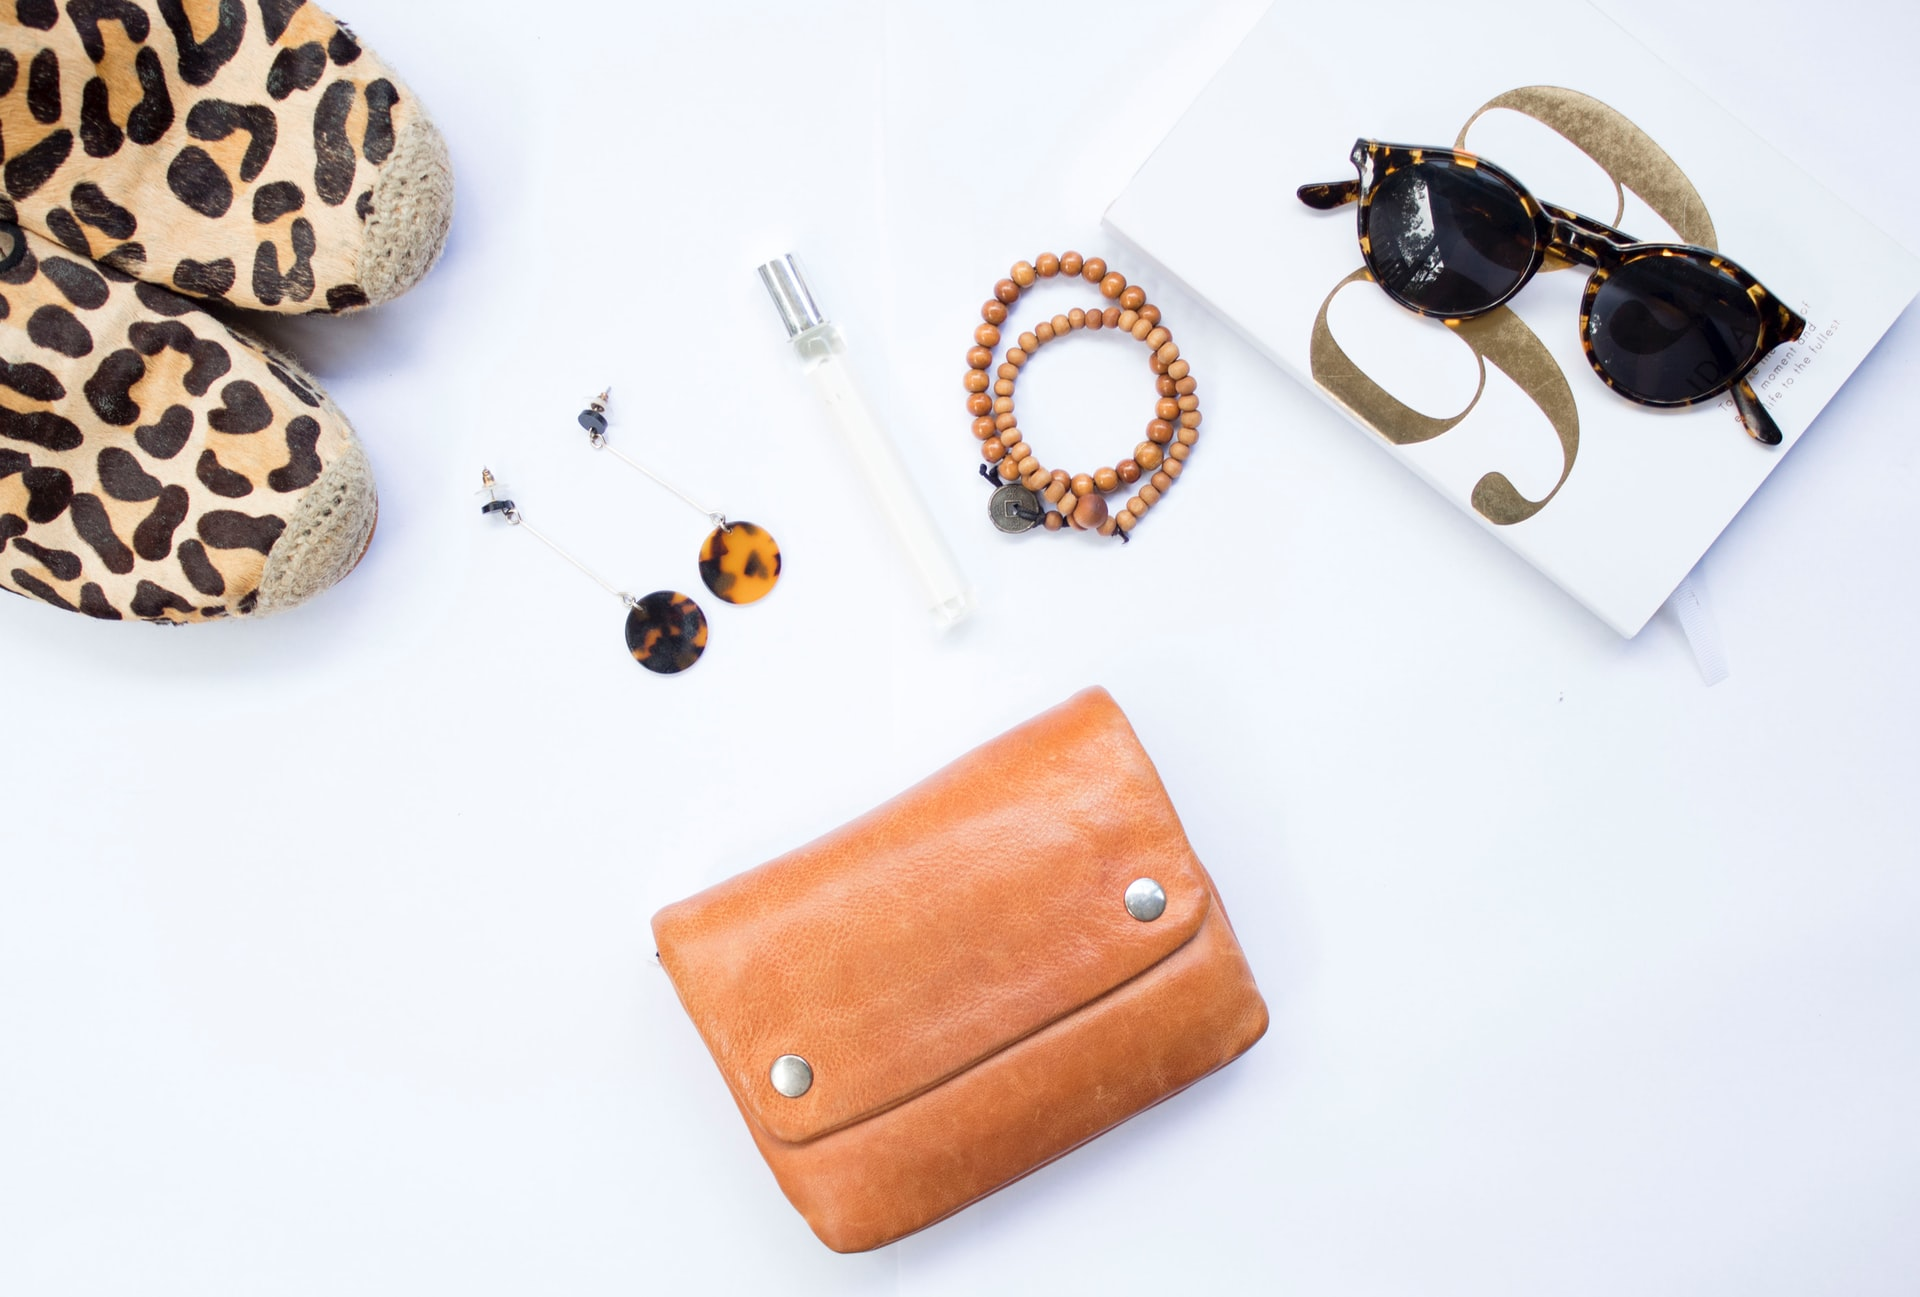 Shop All Things Vintage at Pretty Chic DC